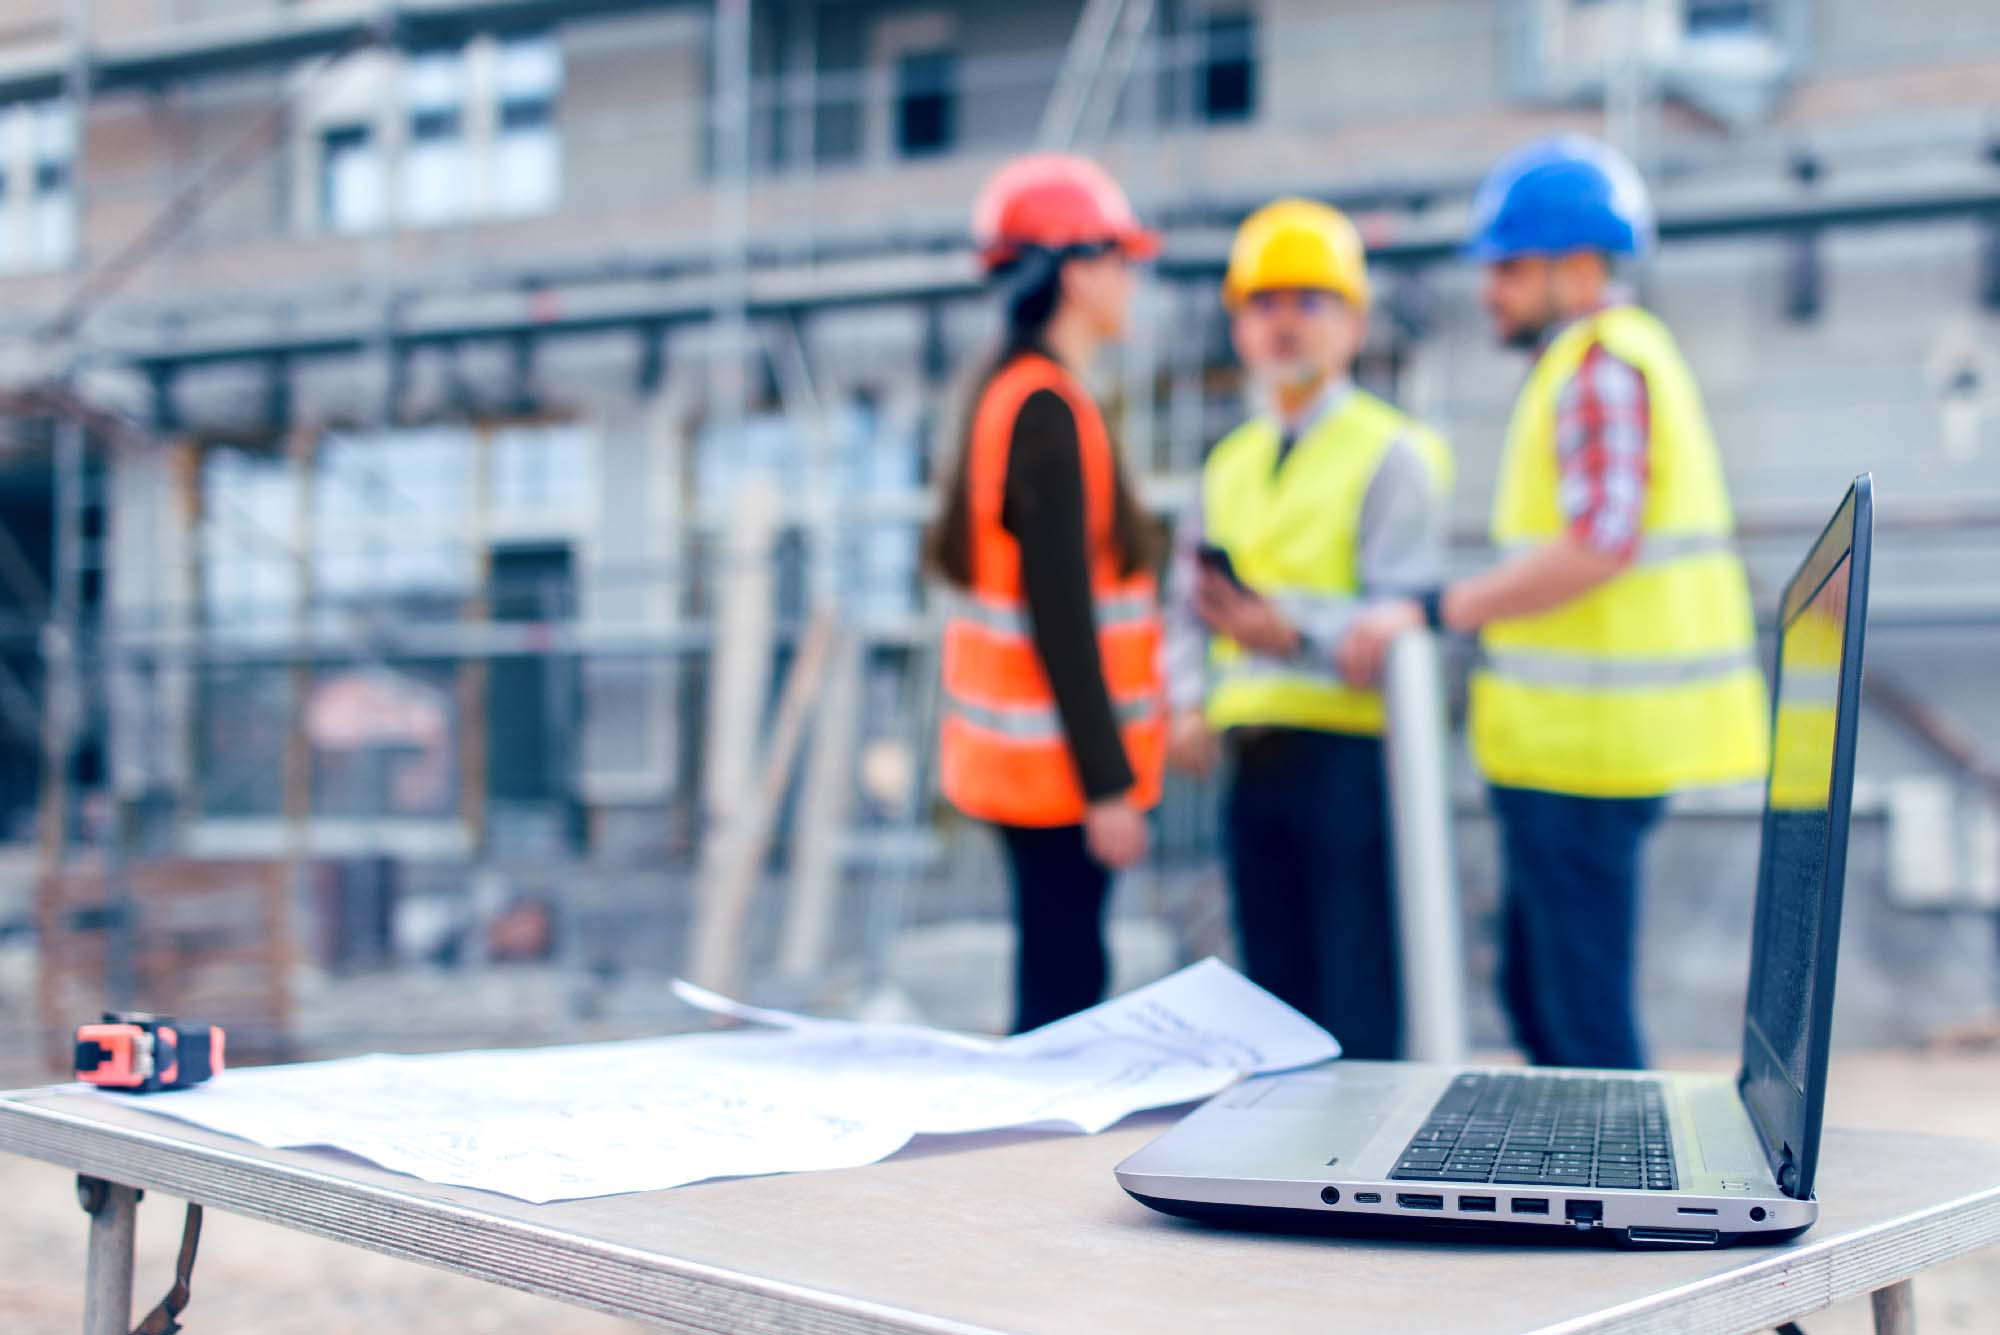 What is a process hazard analysis and when it must be conducted?